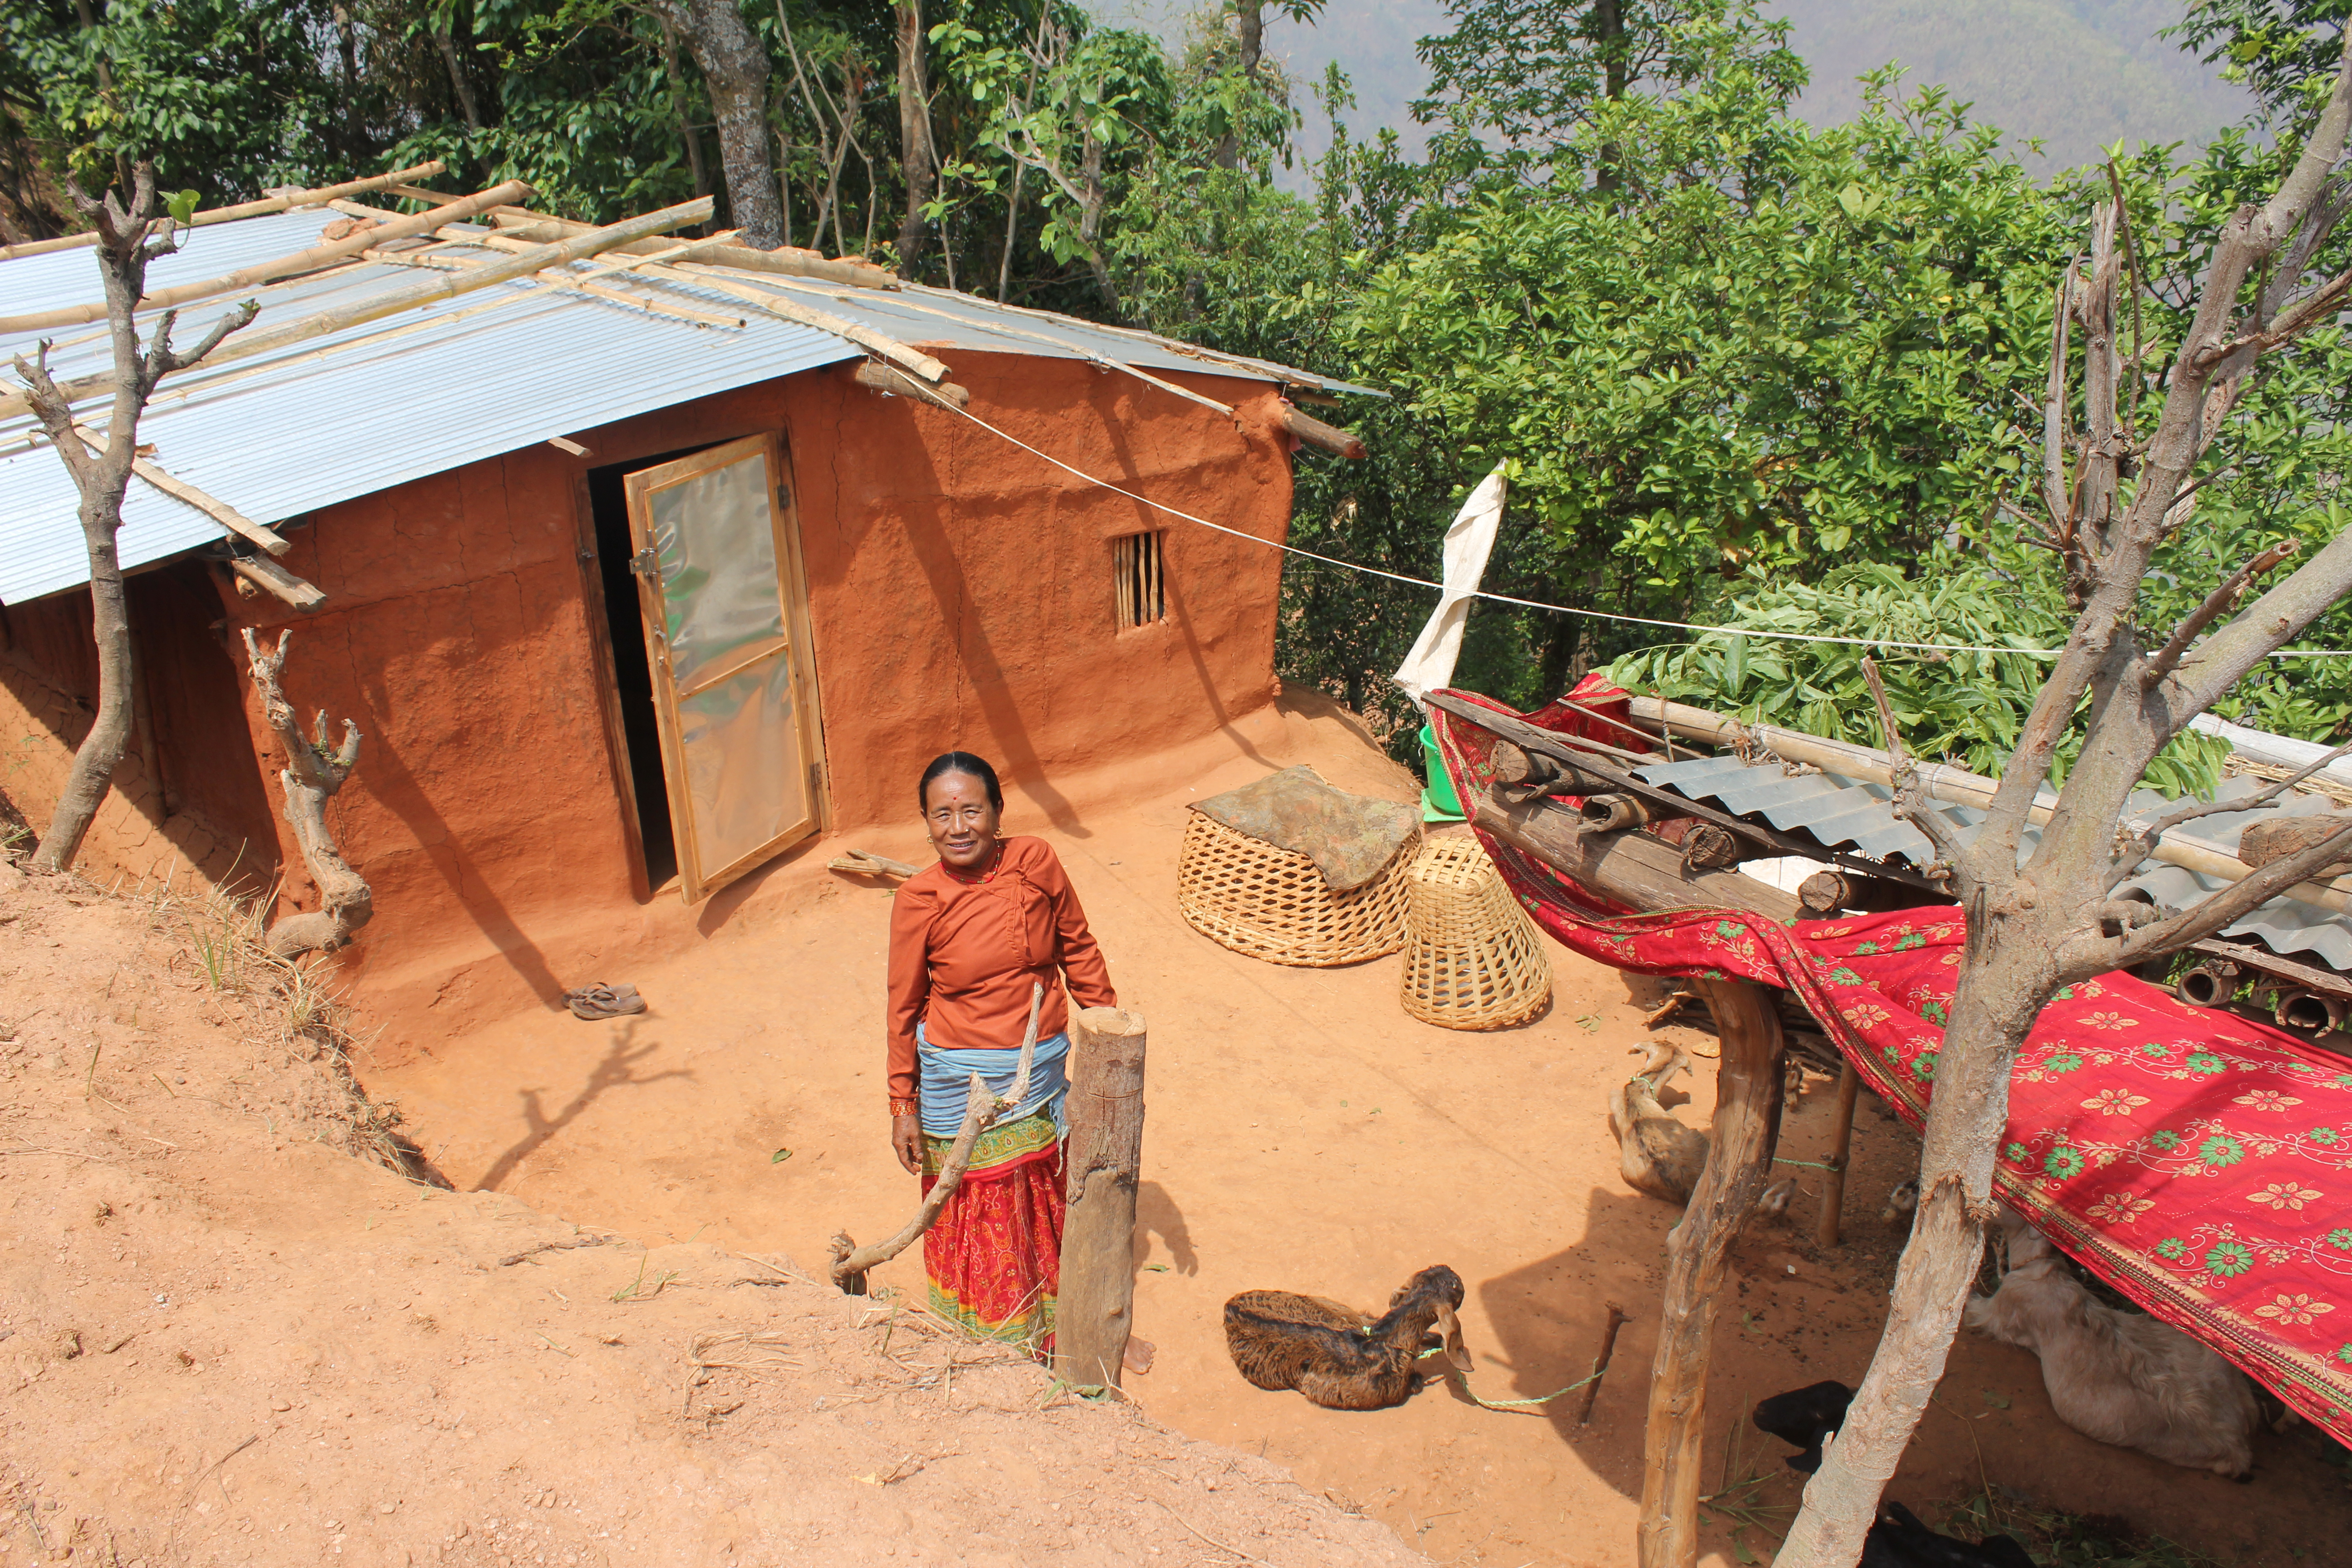 Kanchi outside her house in Nepal.